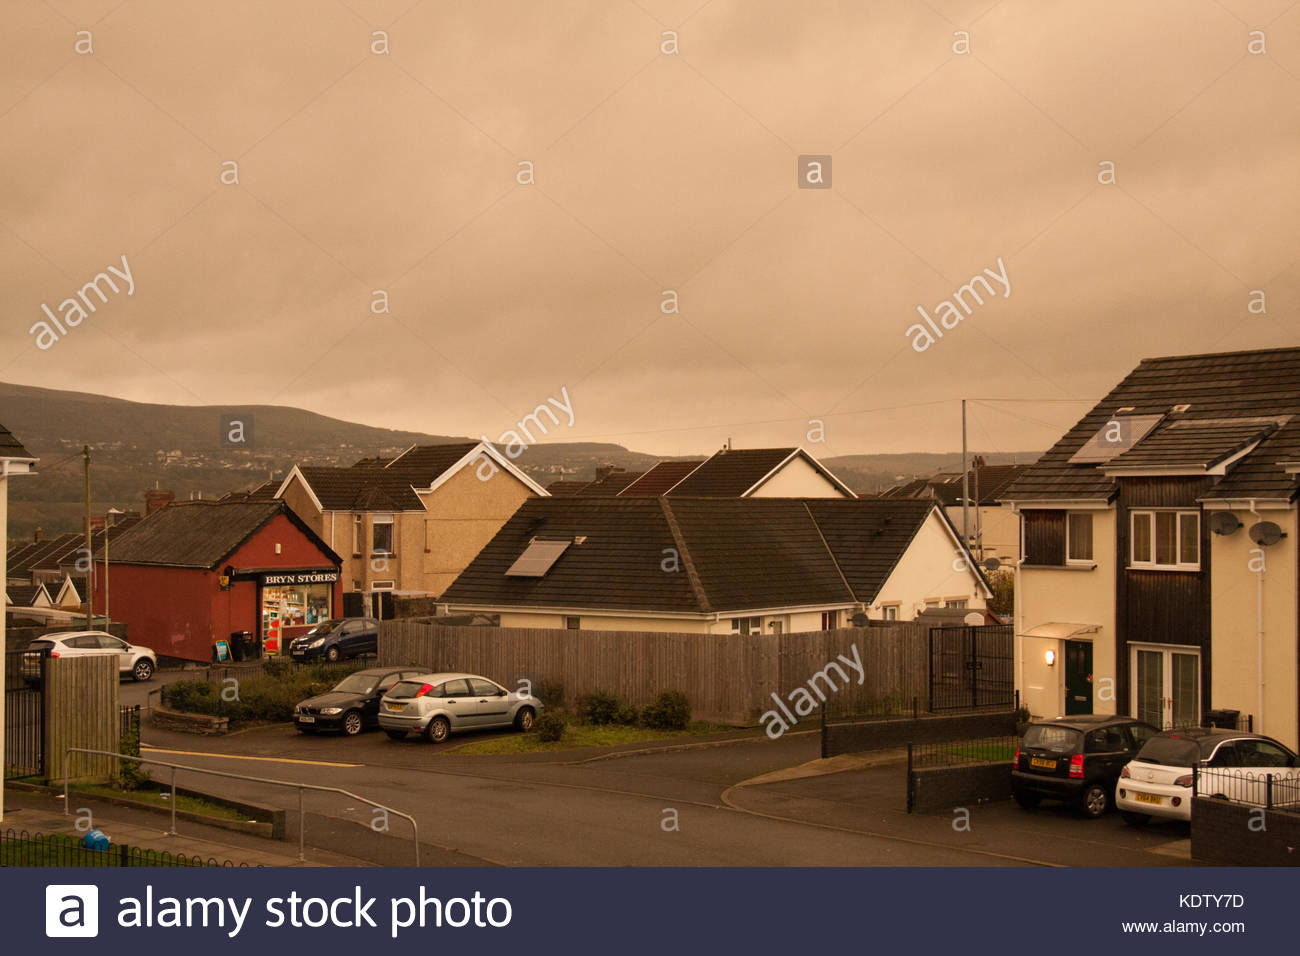 Merthyr Tydfil, South Wales, UK. 16 October 2017. UK weather: Dark storm clouds affect the region just after 10am - Stock Image